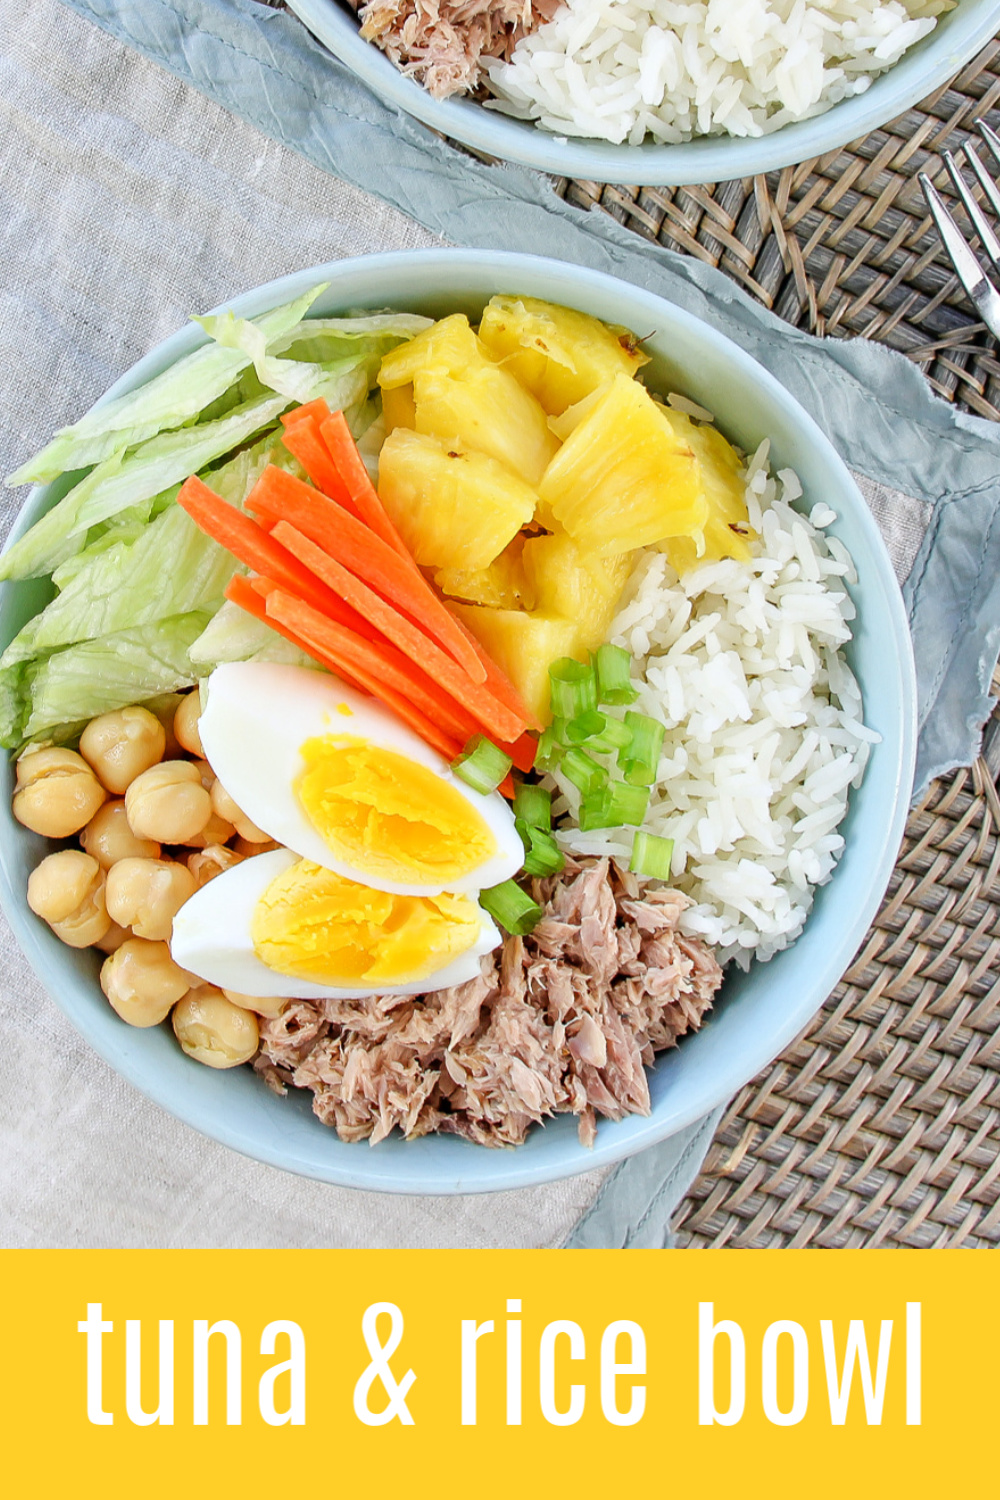 tuna and rice protein bowl Pinterest image.